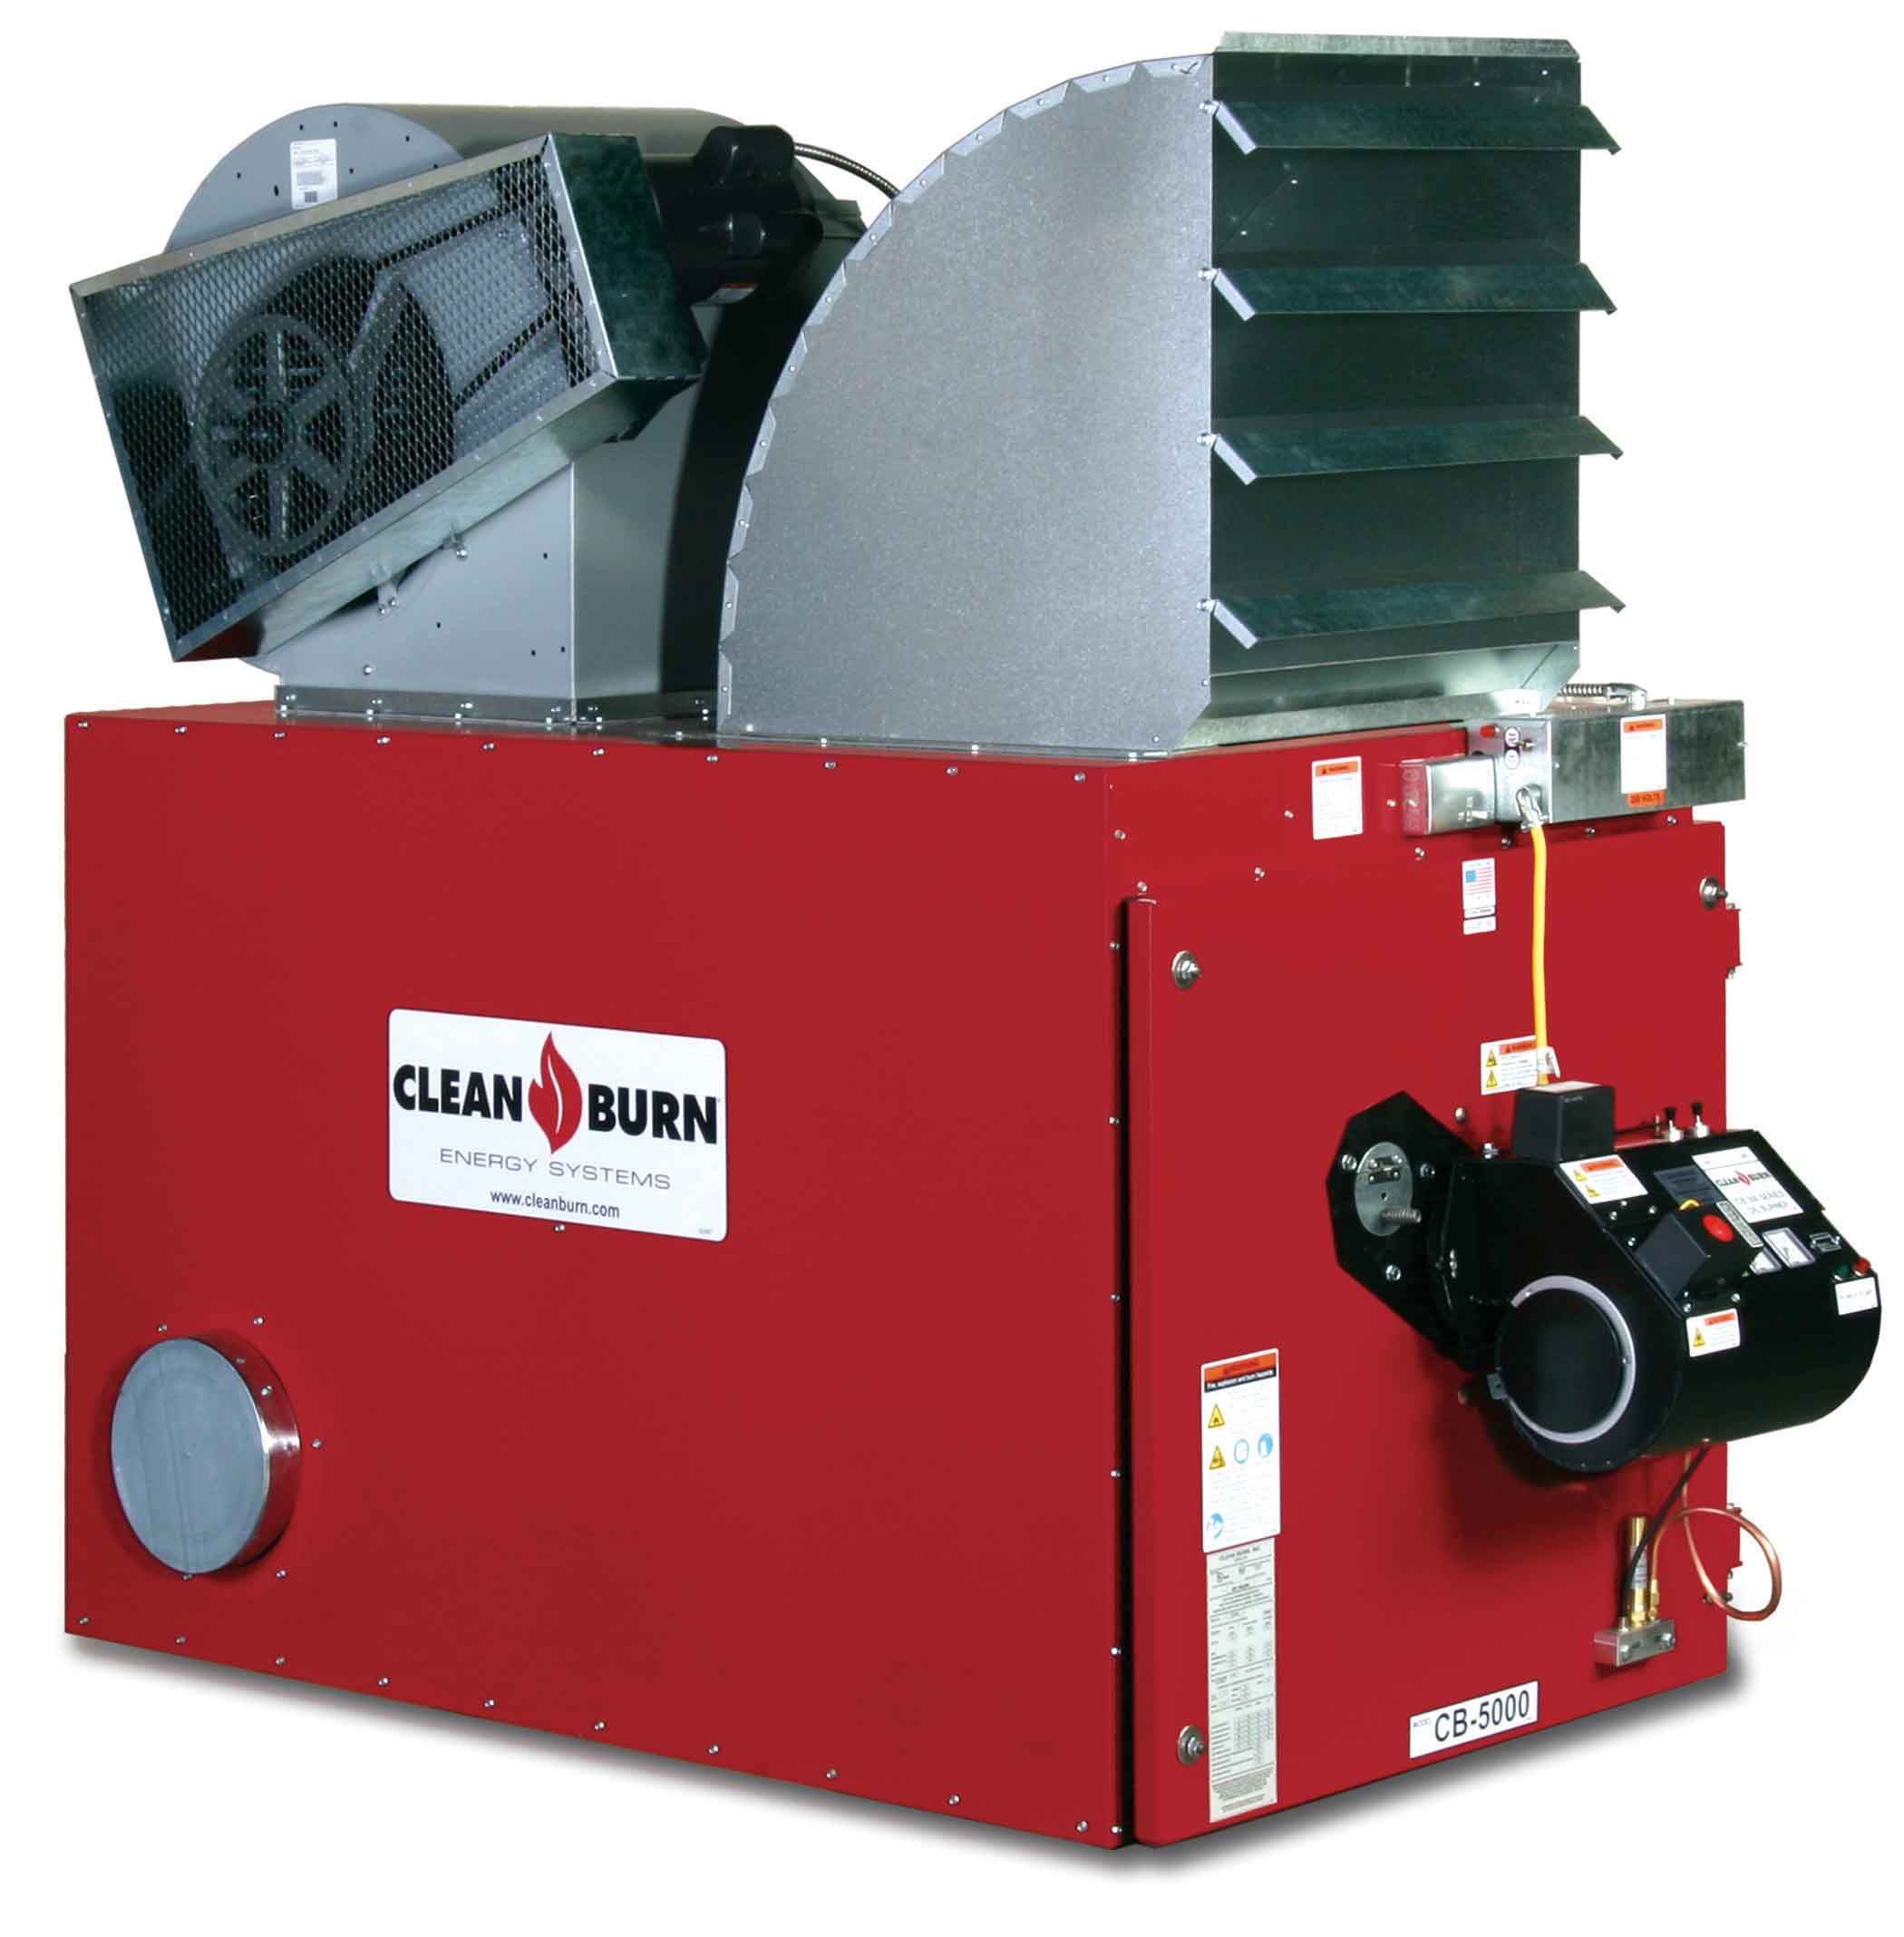 Cb 5000 Clean Burn Furnace